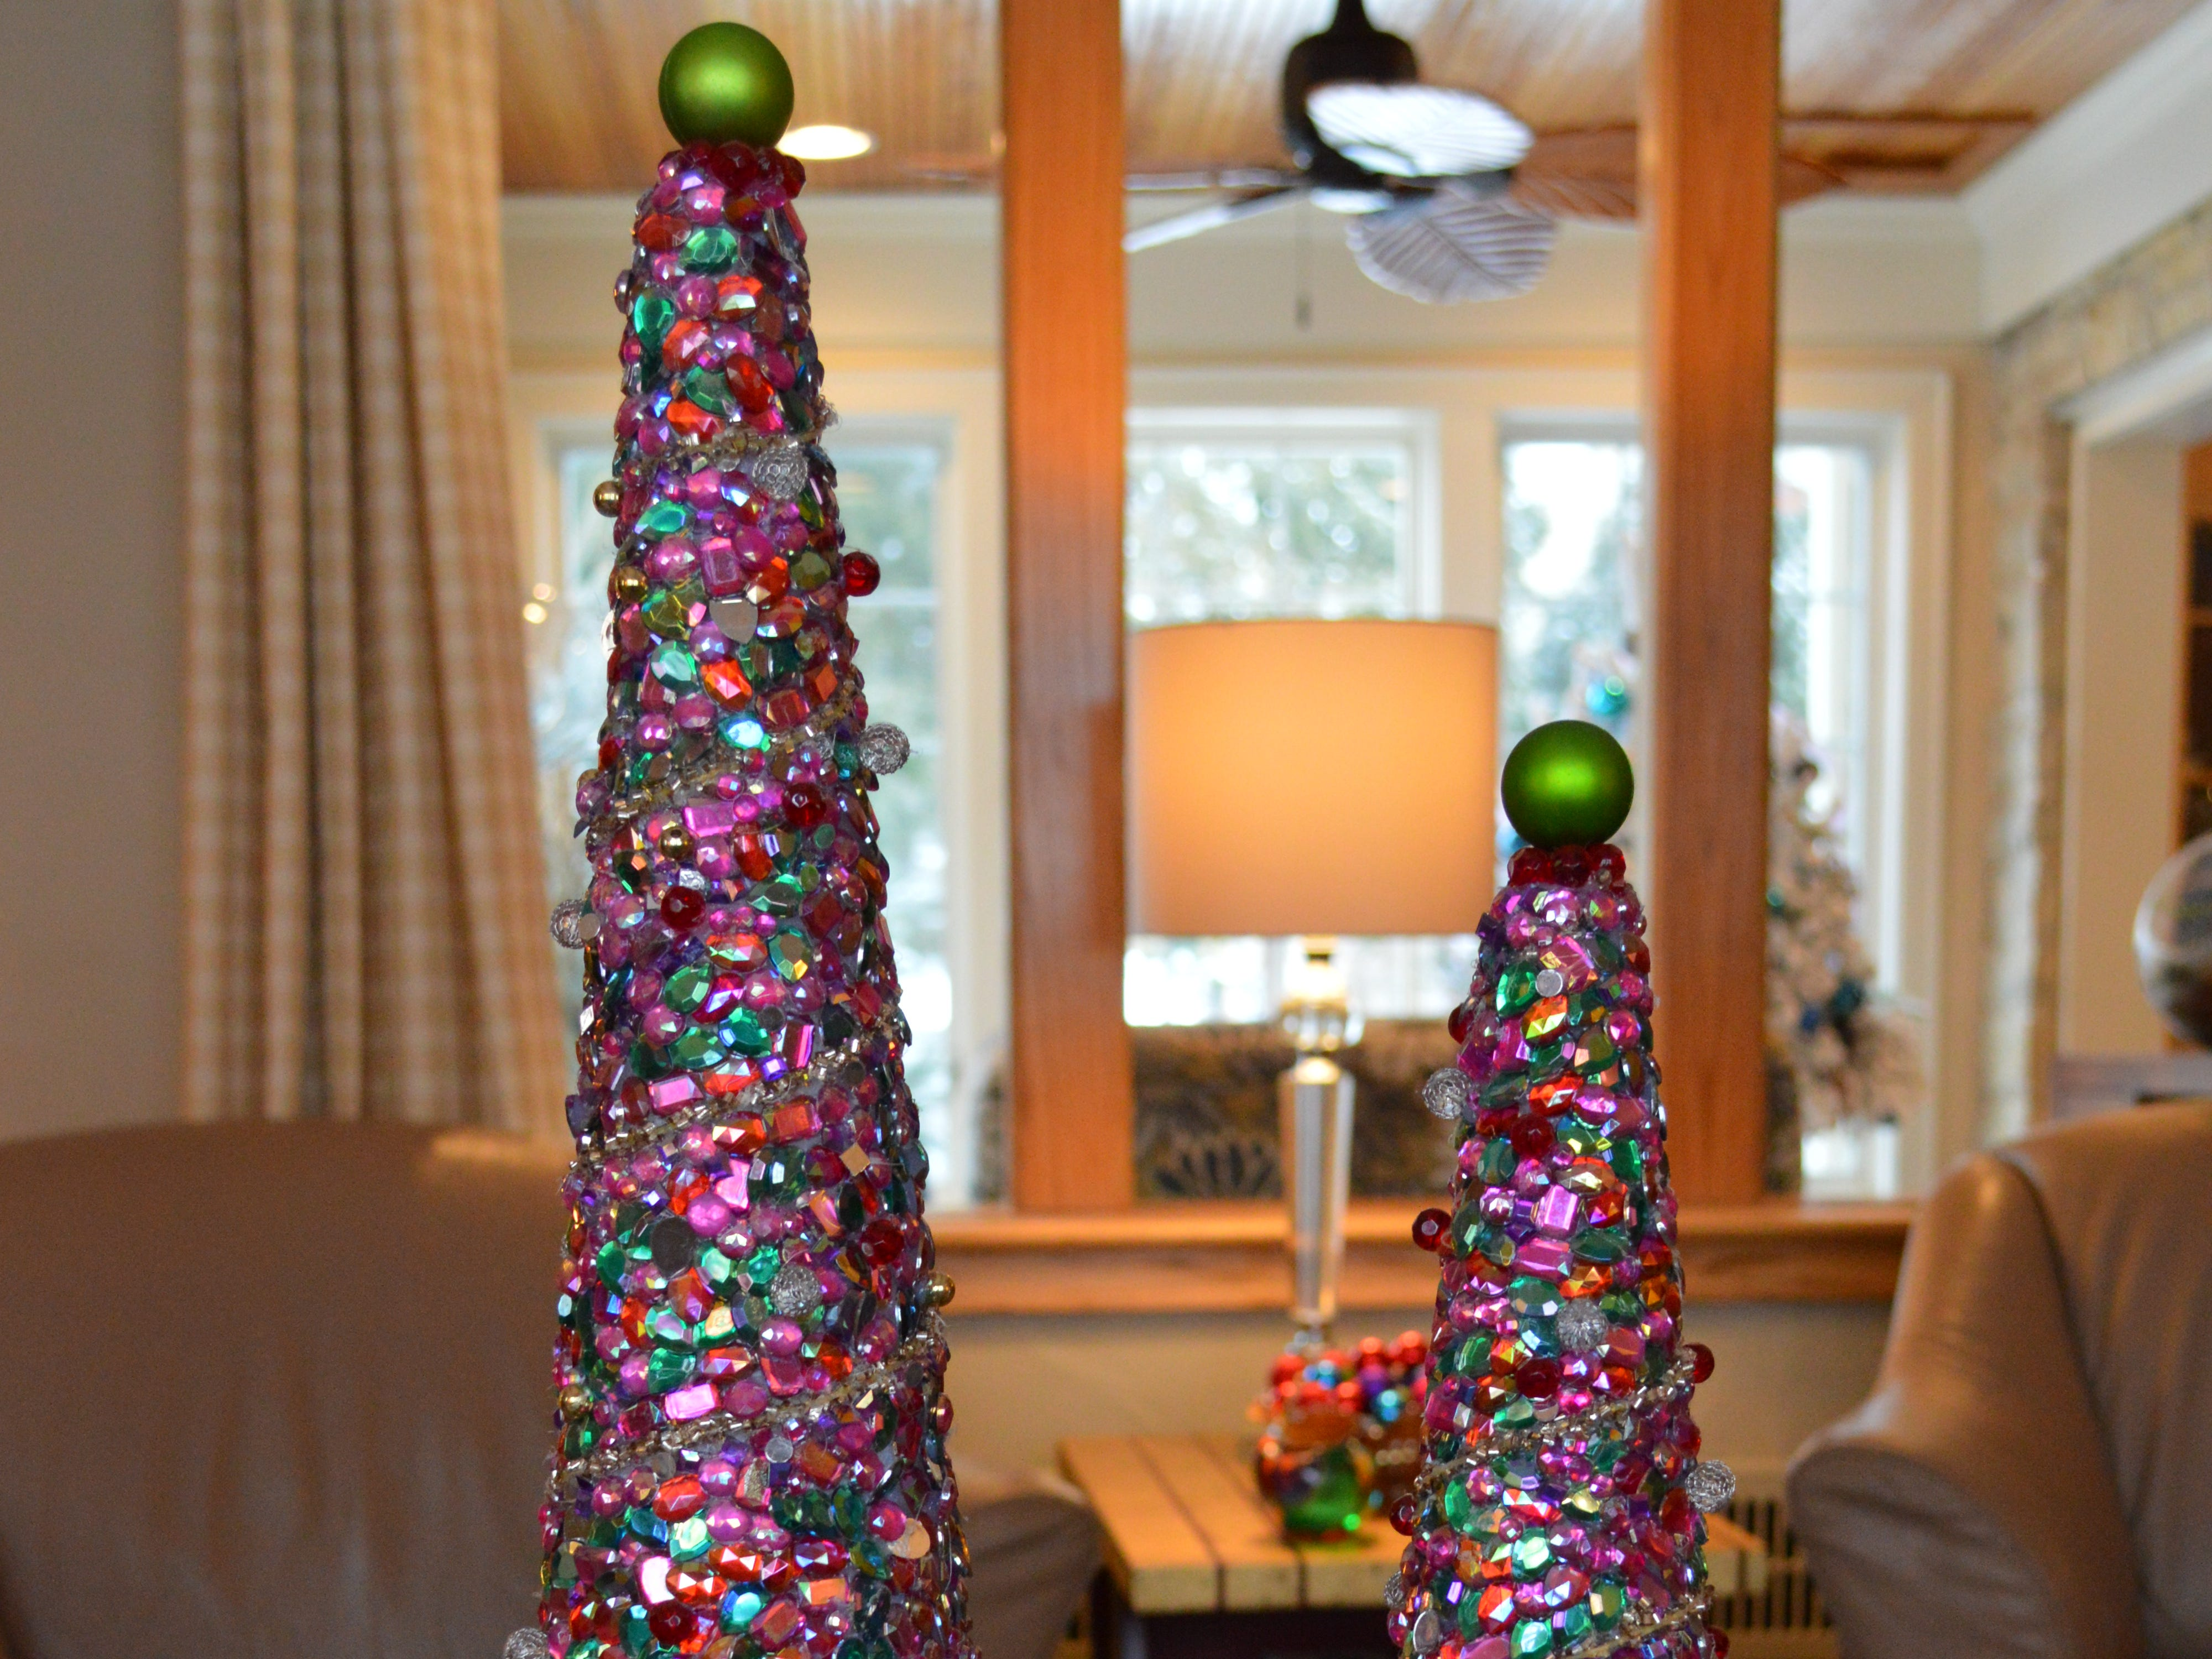 Kathy Oelstrom, first vice president of the Wauwatosa Woman's Club, spent about 40 hours making these jeweled Christmas trees.